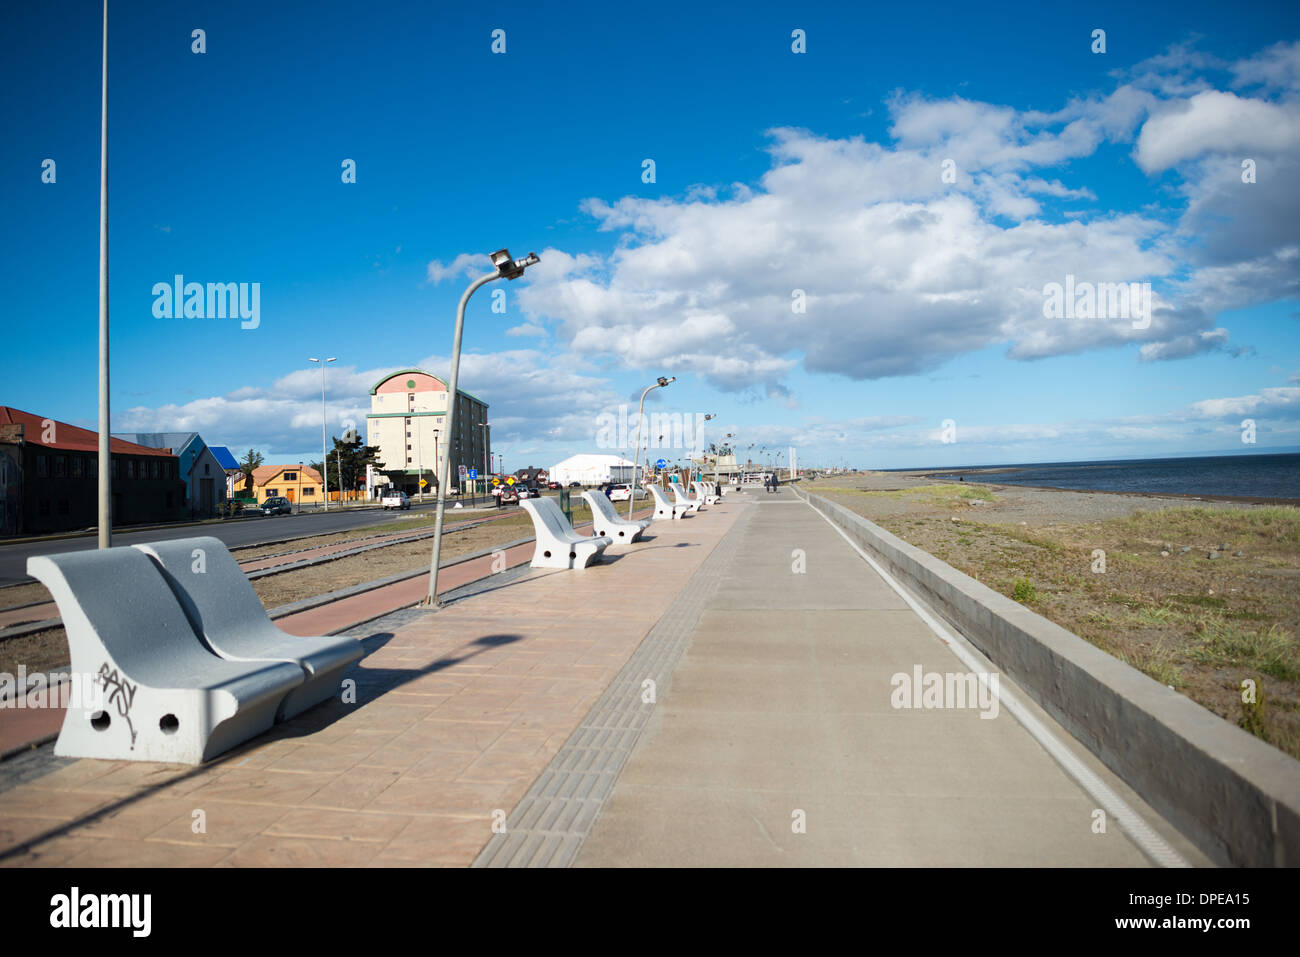 PUNTA ARENAS, Chile - The waterfront of the Strait of Magellan in Punta Arenas, Chile. The city is the largest south of the 46th parallel south and capital city of Chile's southernmost region of Magallanes and Antartica Chilena. - Stock Image